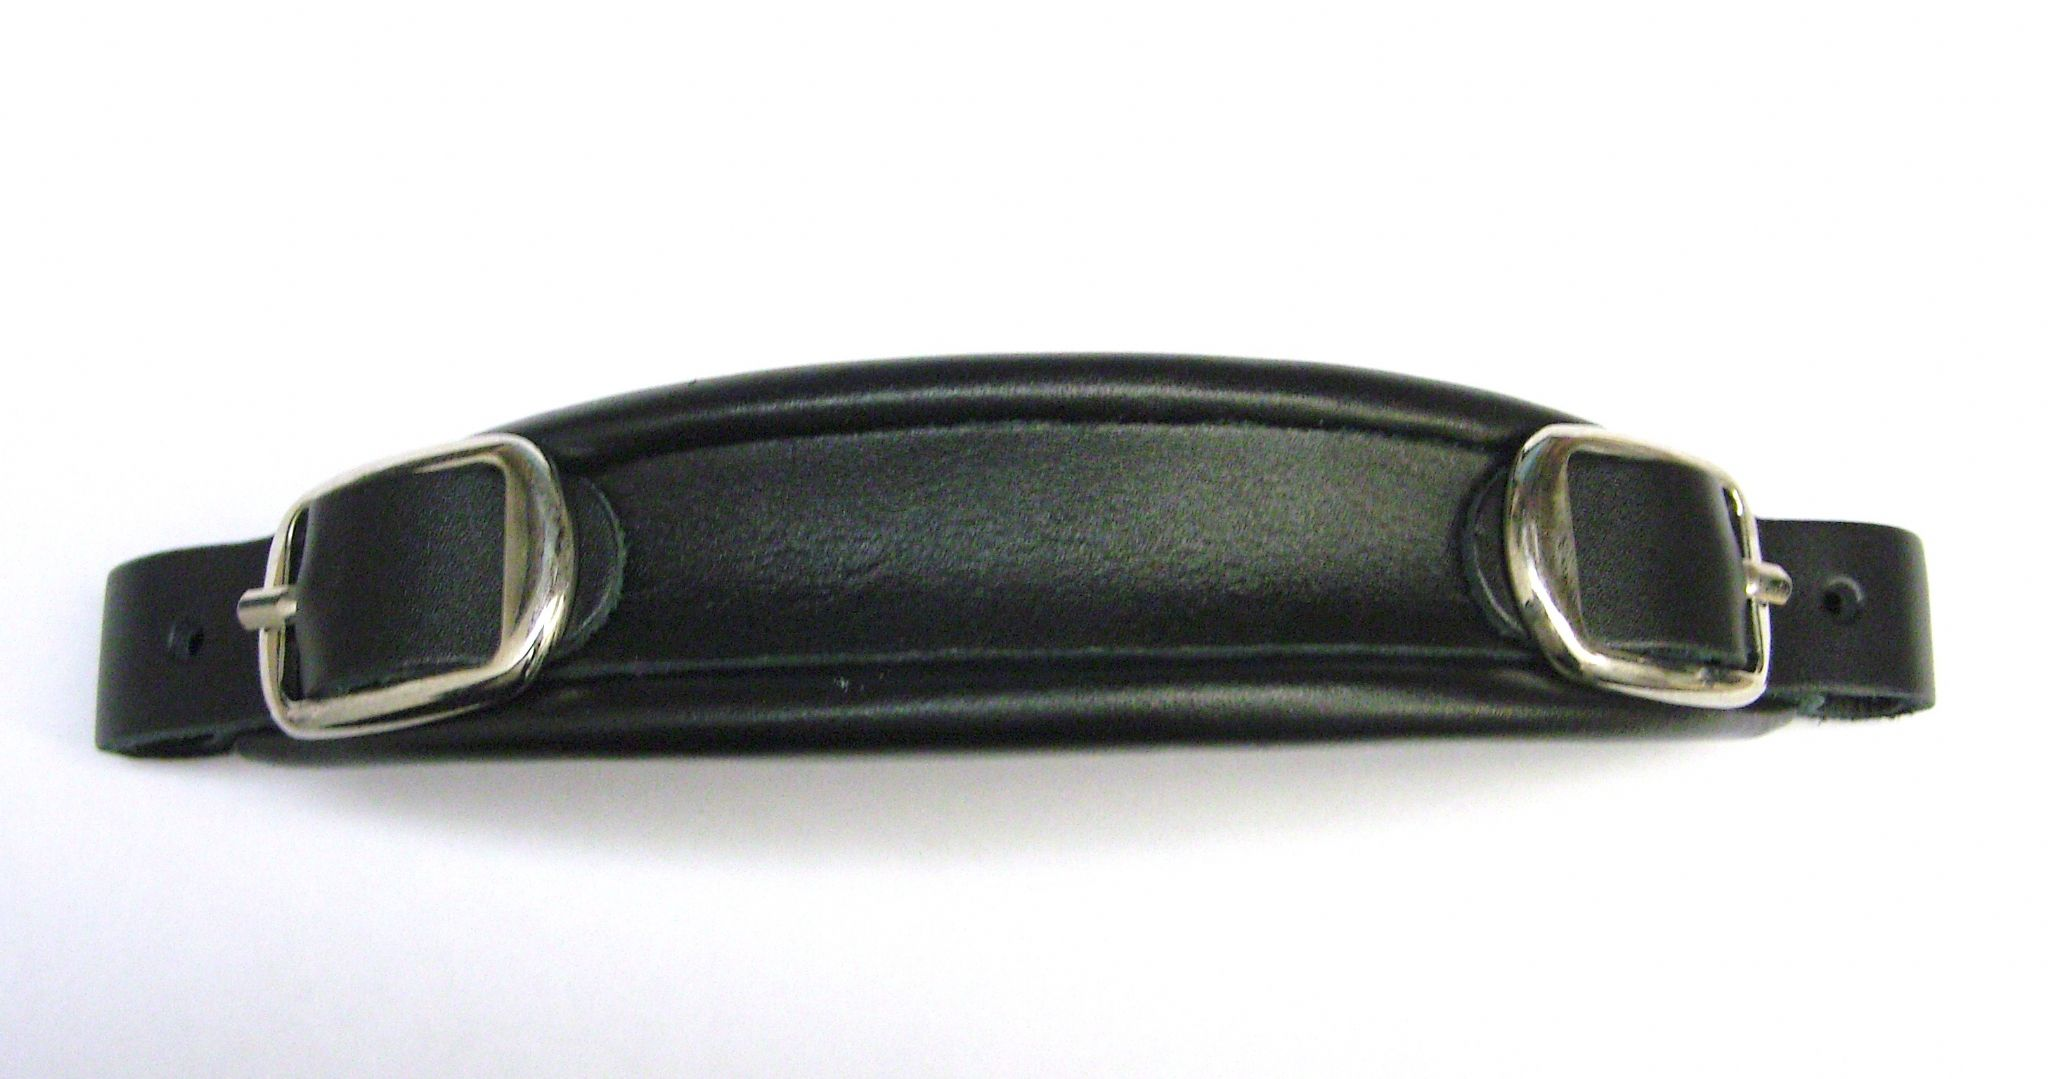 Leather Replacement Handle With Buckles For Guitar Case